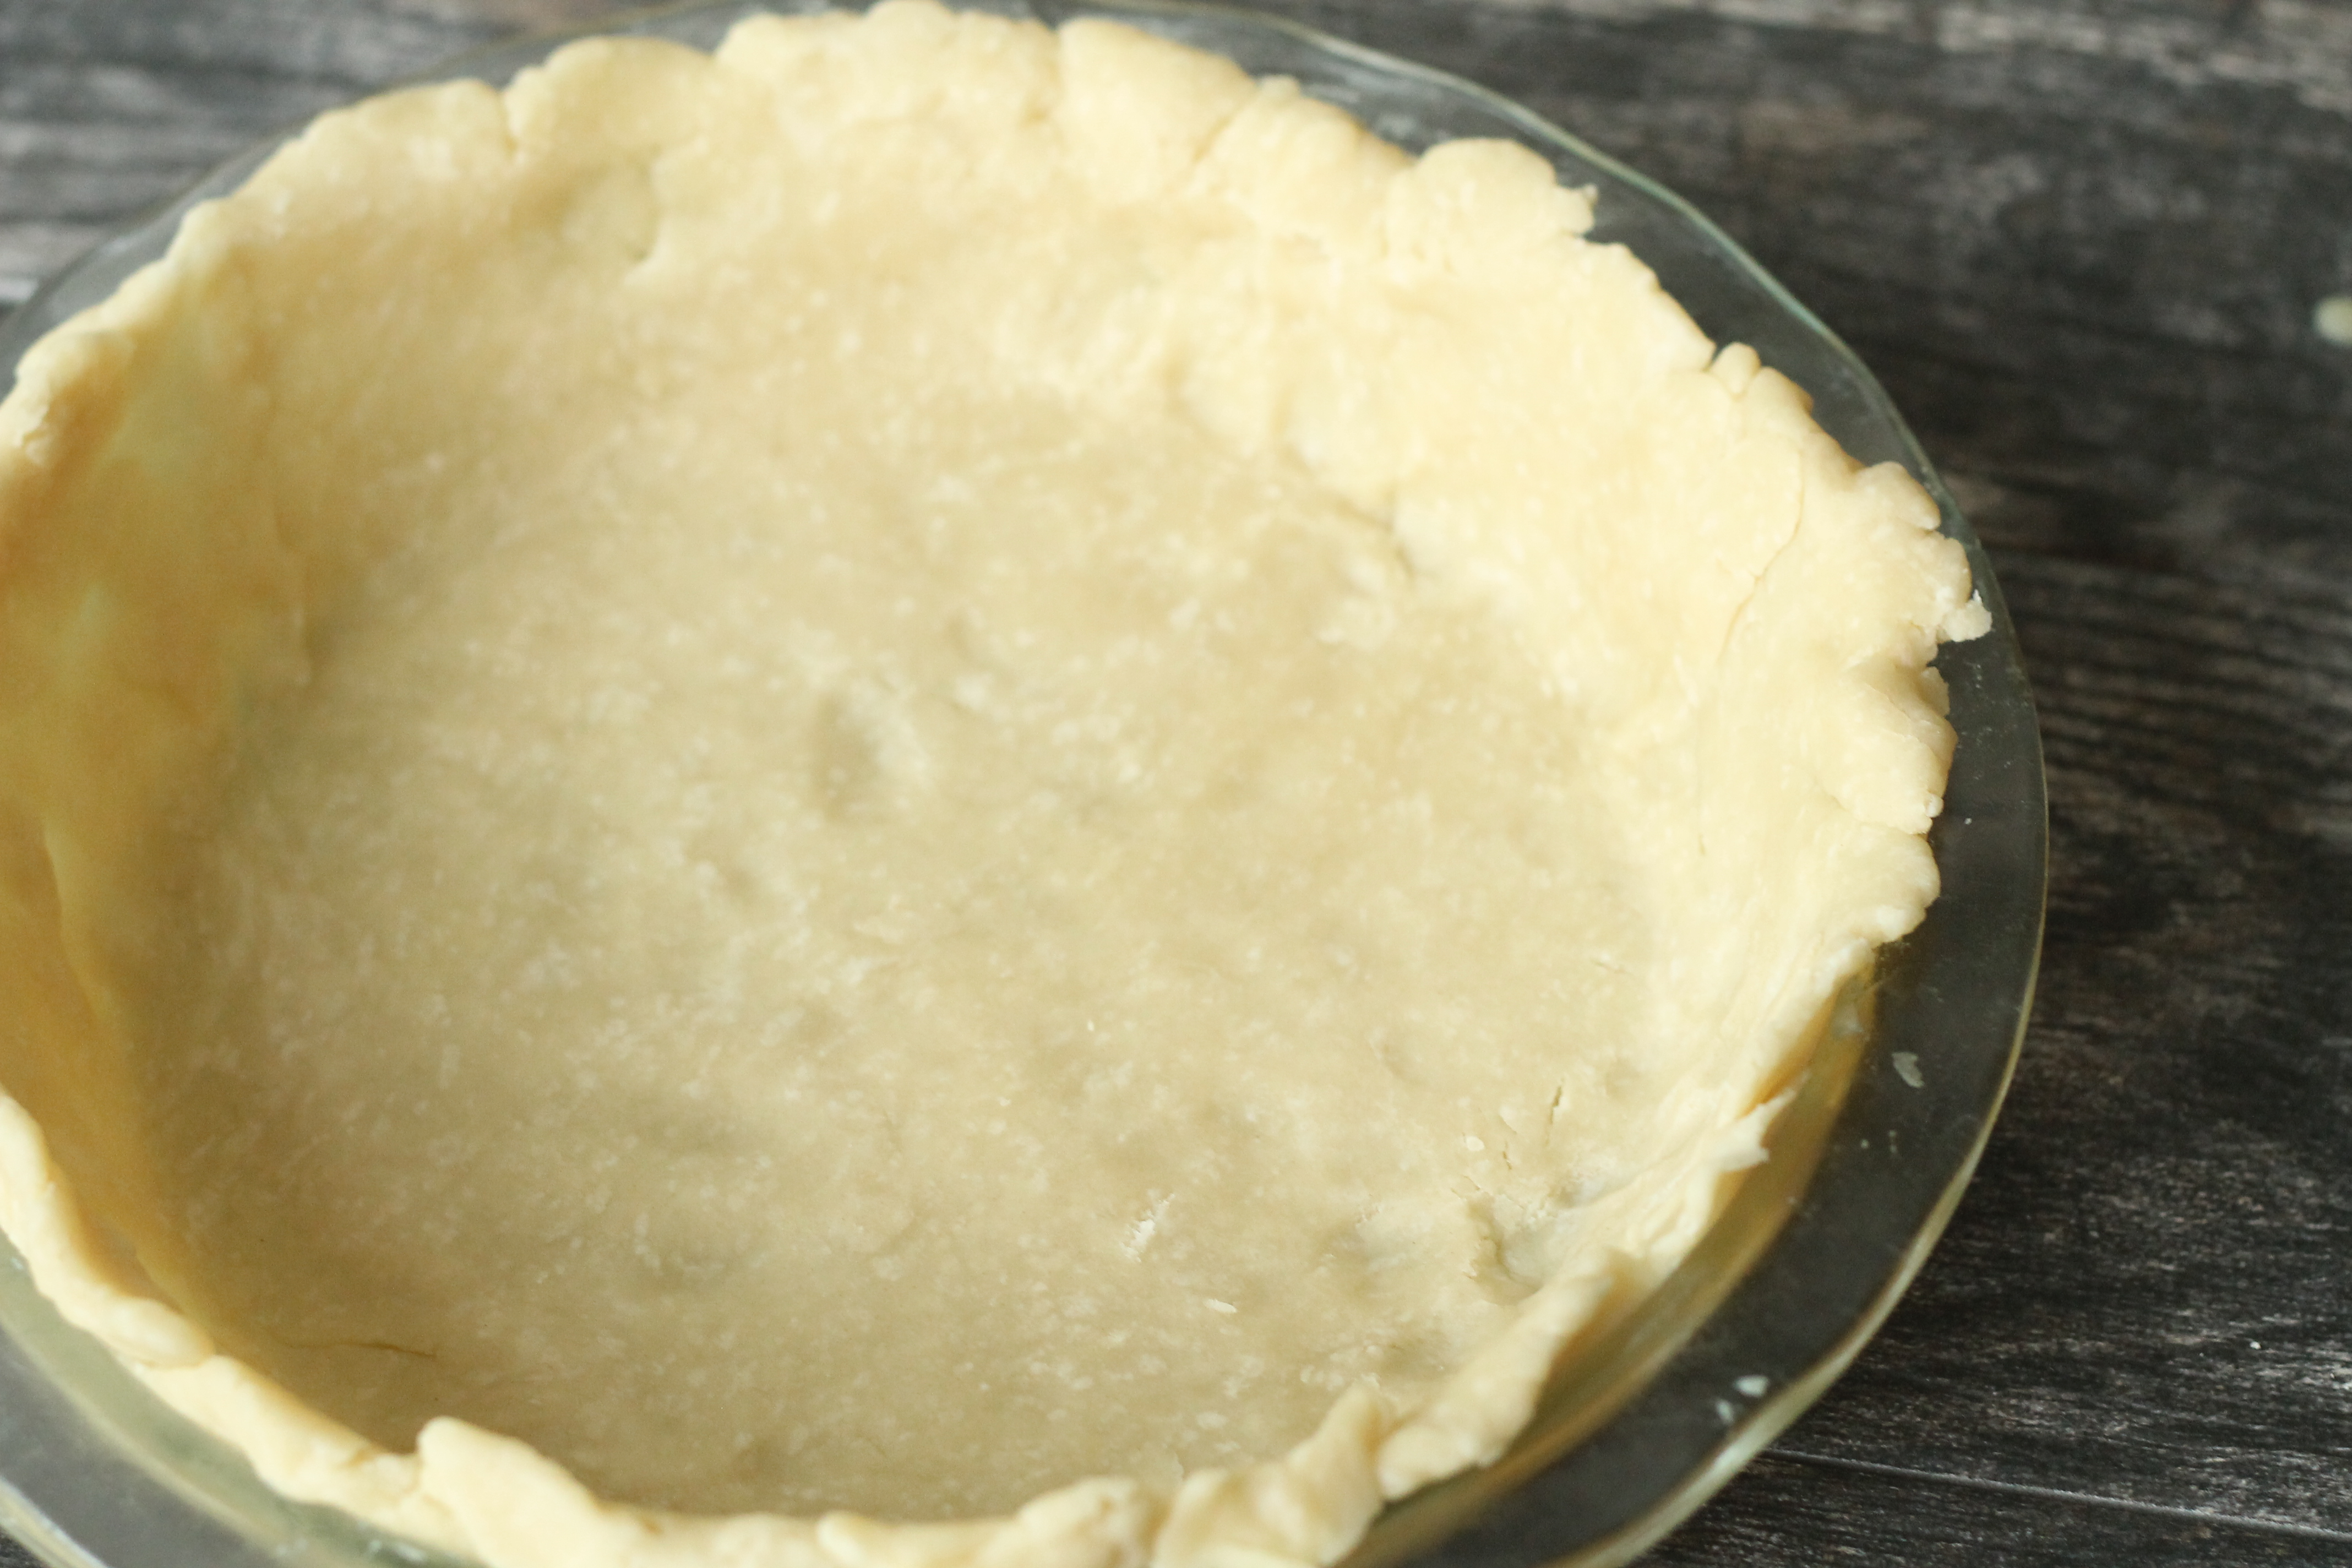 In a greased pie pan, lay in the first sheet of pie dough. Trim any ...